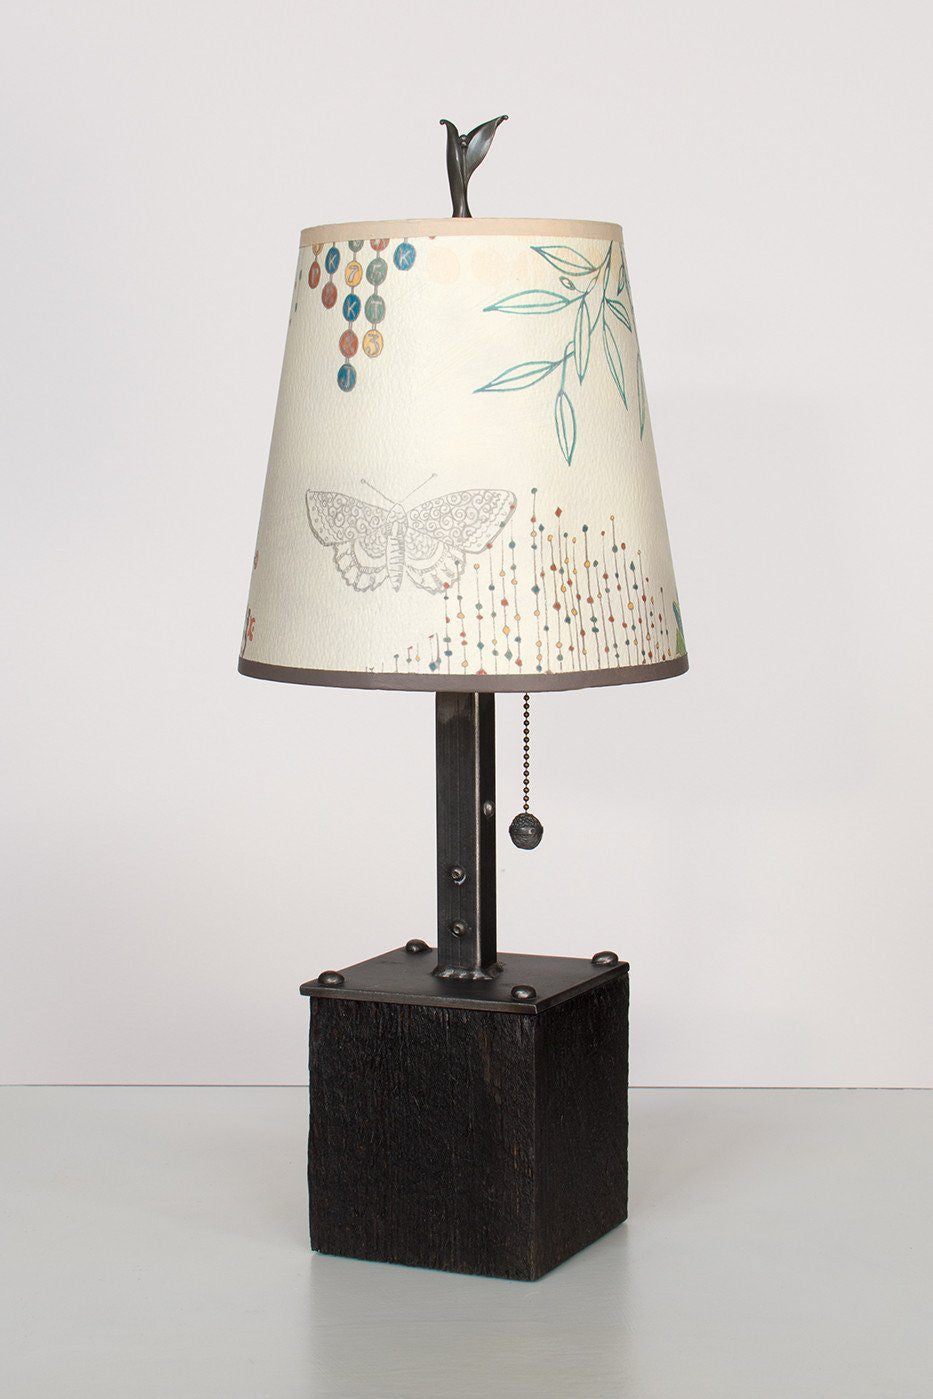 Steel Table Lamp on Reclaimed Wood with Small Drum Shade in Ecru Journey Lit